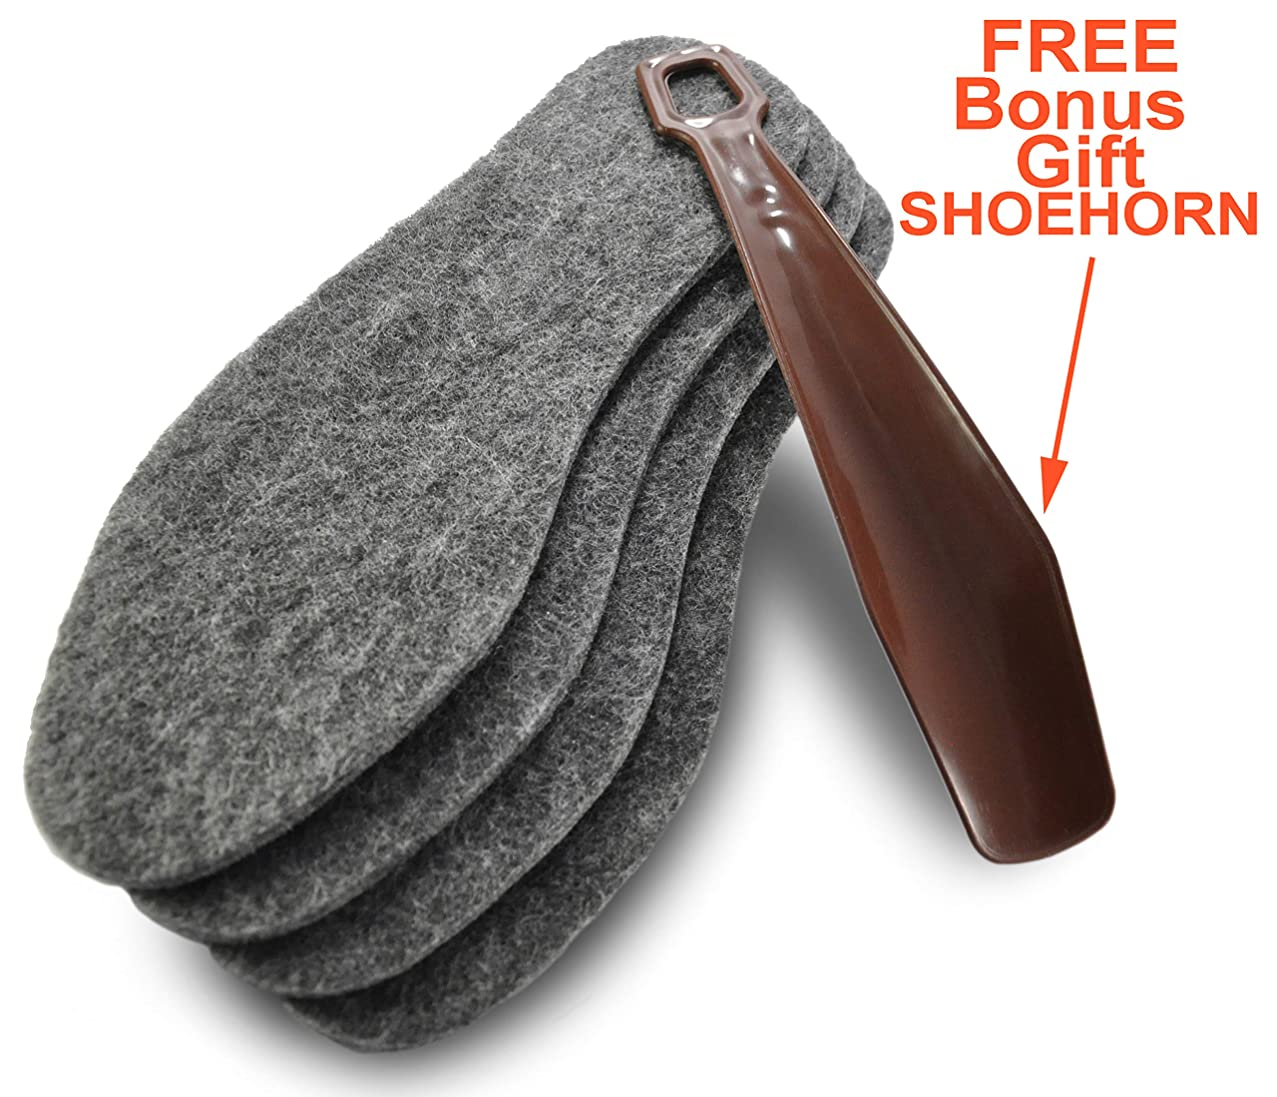 Felt Boot Insoles, Unisex Size 8M and 10W, Man, Woman, Soft Insoles, Warm Inserts, Dry Insoles, Winter Shoes Insoles, 4 mm Thick Footwear Support, Gray 2 Pairs Pack, Free Brown Shoe Horn Gift, 803228